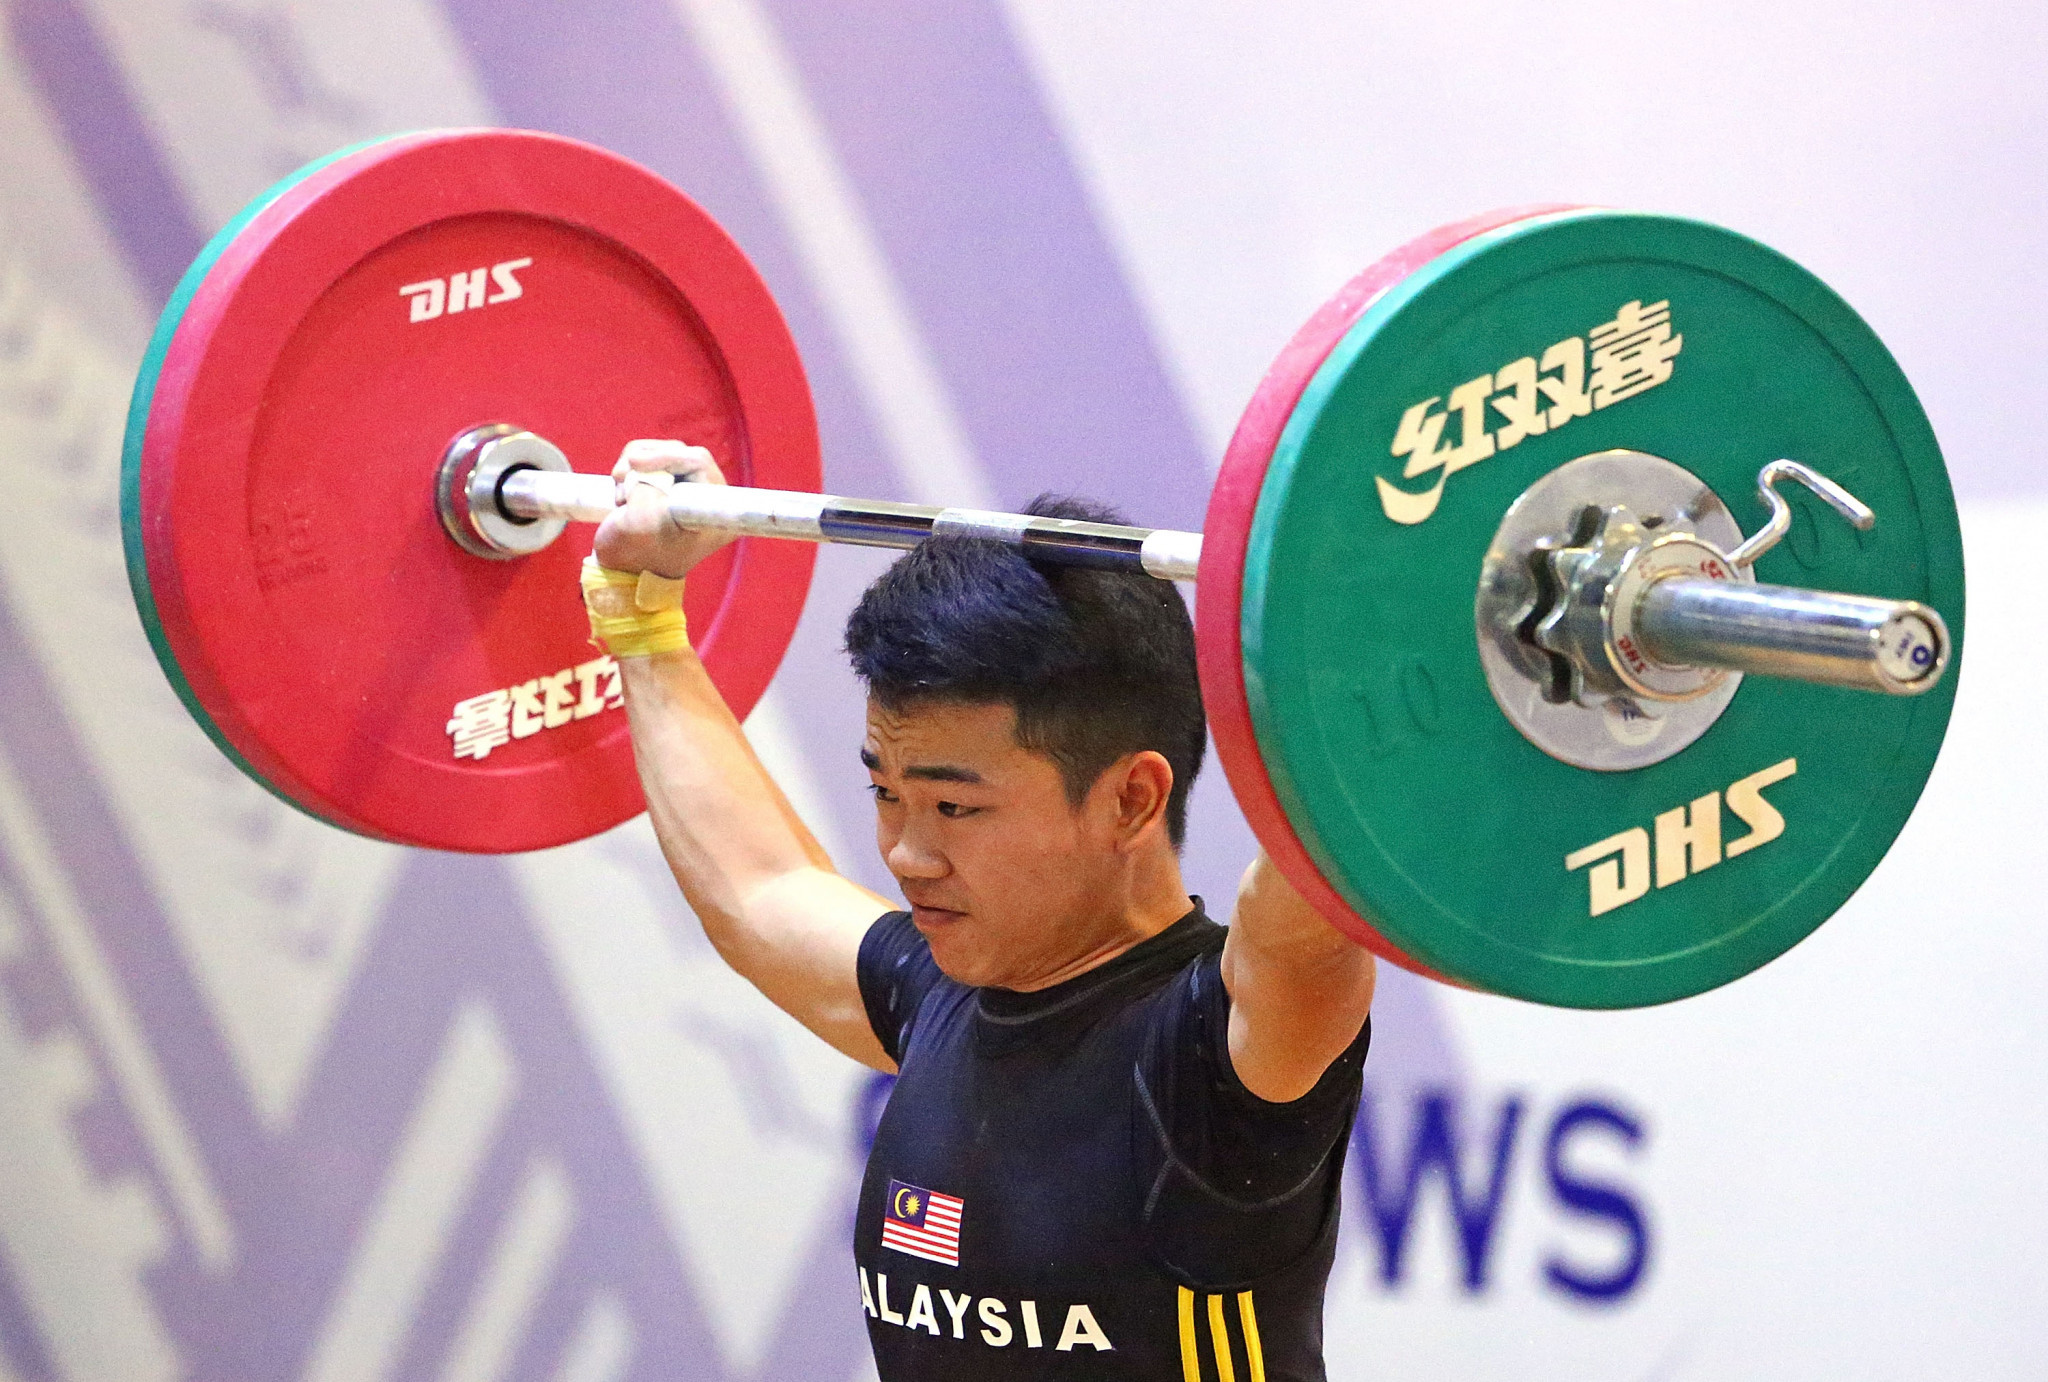 More than 400 athletes expected to compete in IWF Online Youth World Cup